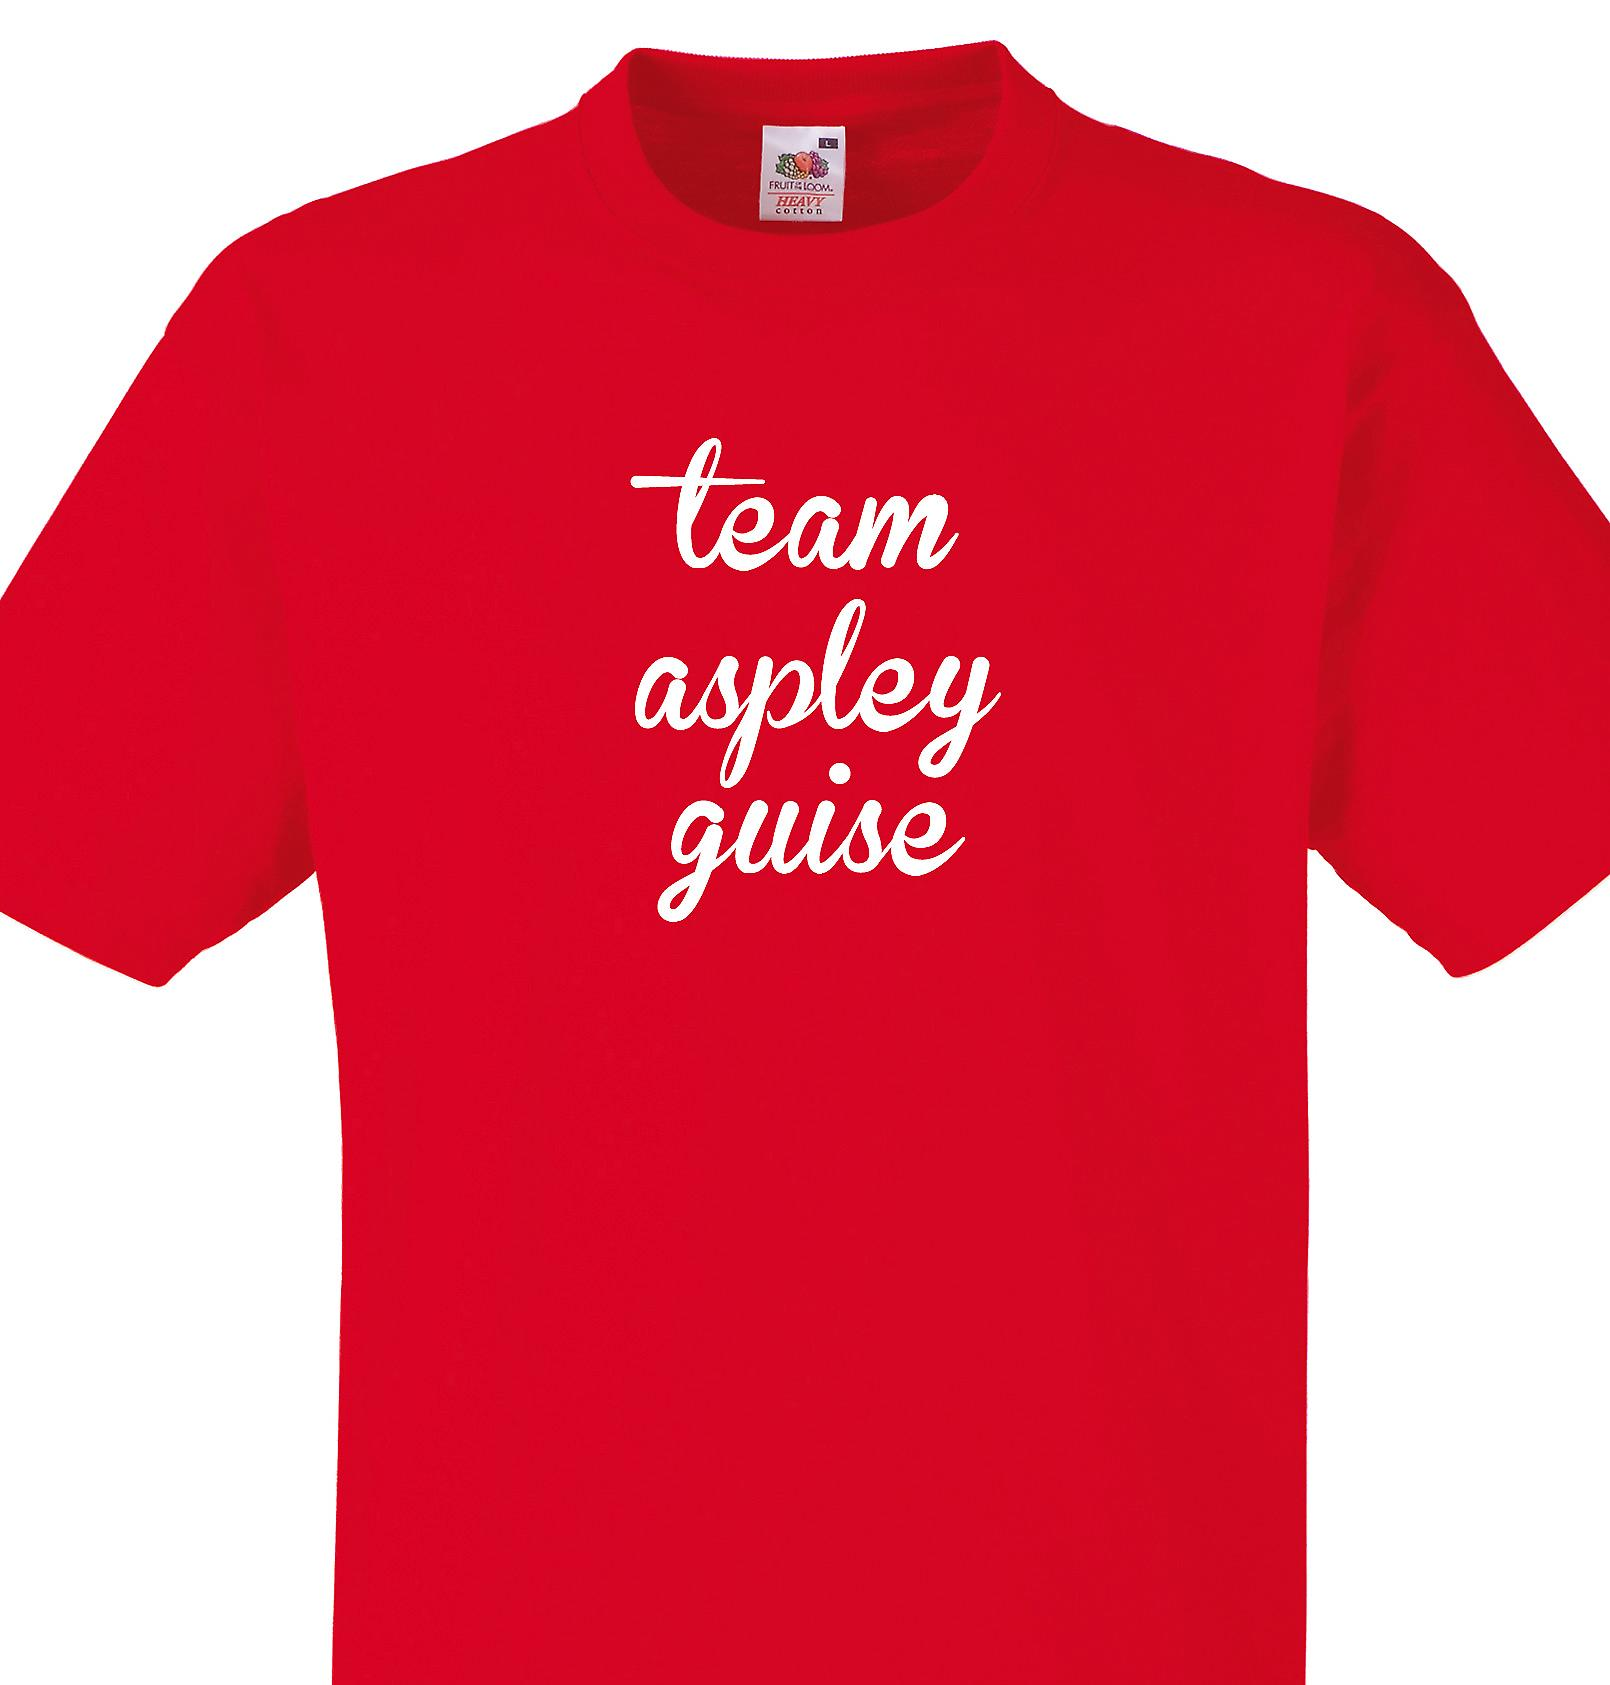 Team Aspley guise Red T shirt